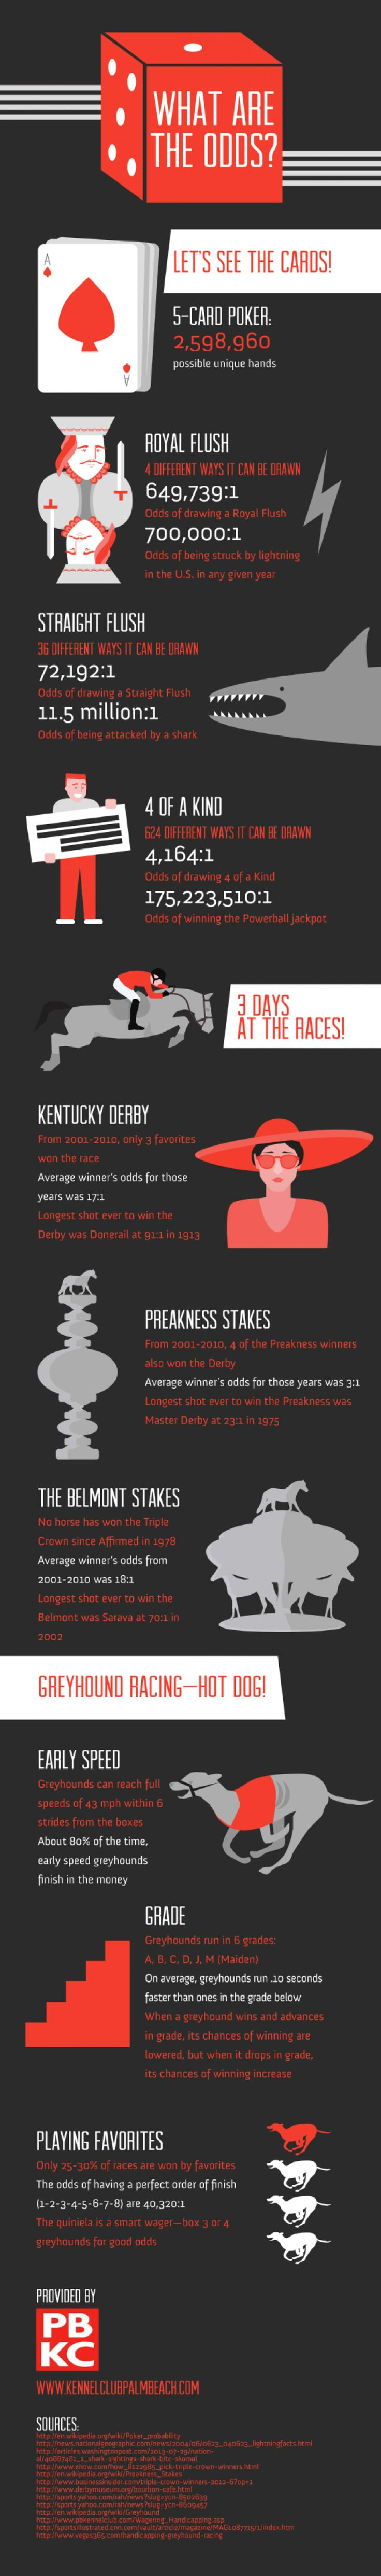 What are the odds visually infographic unschooling